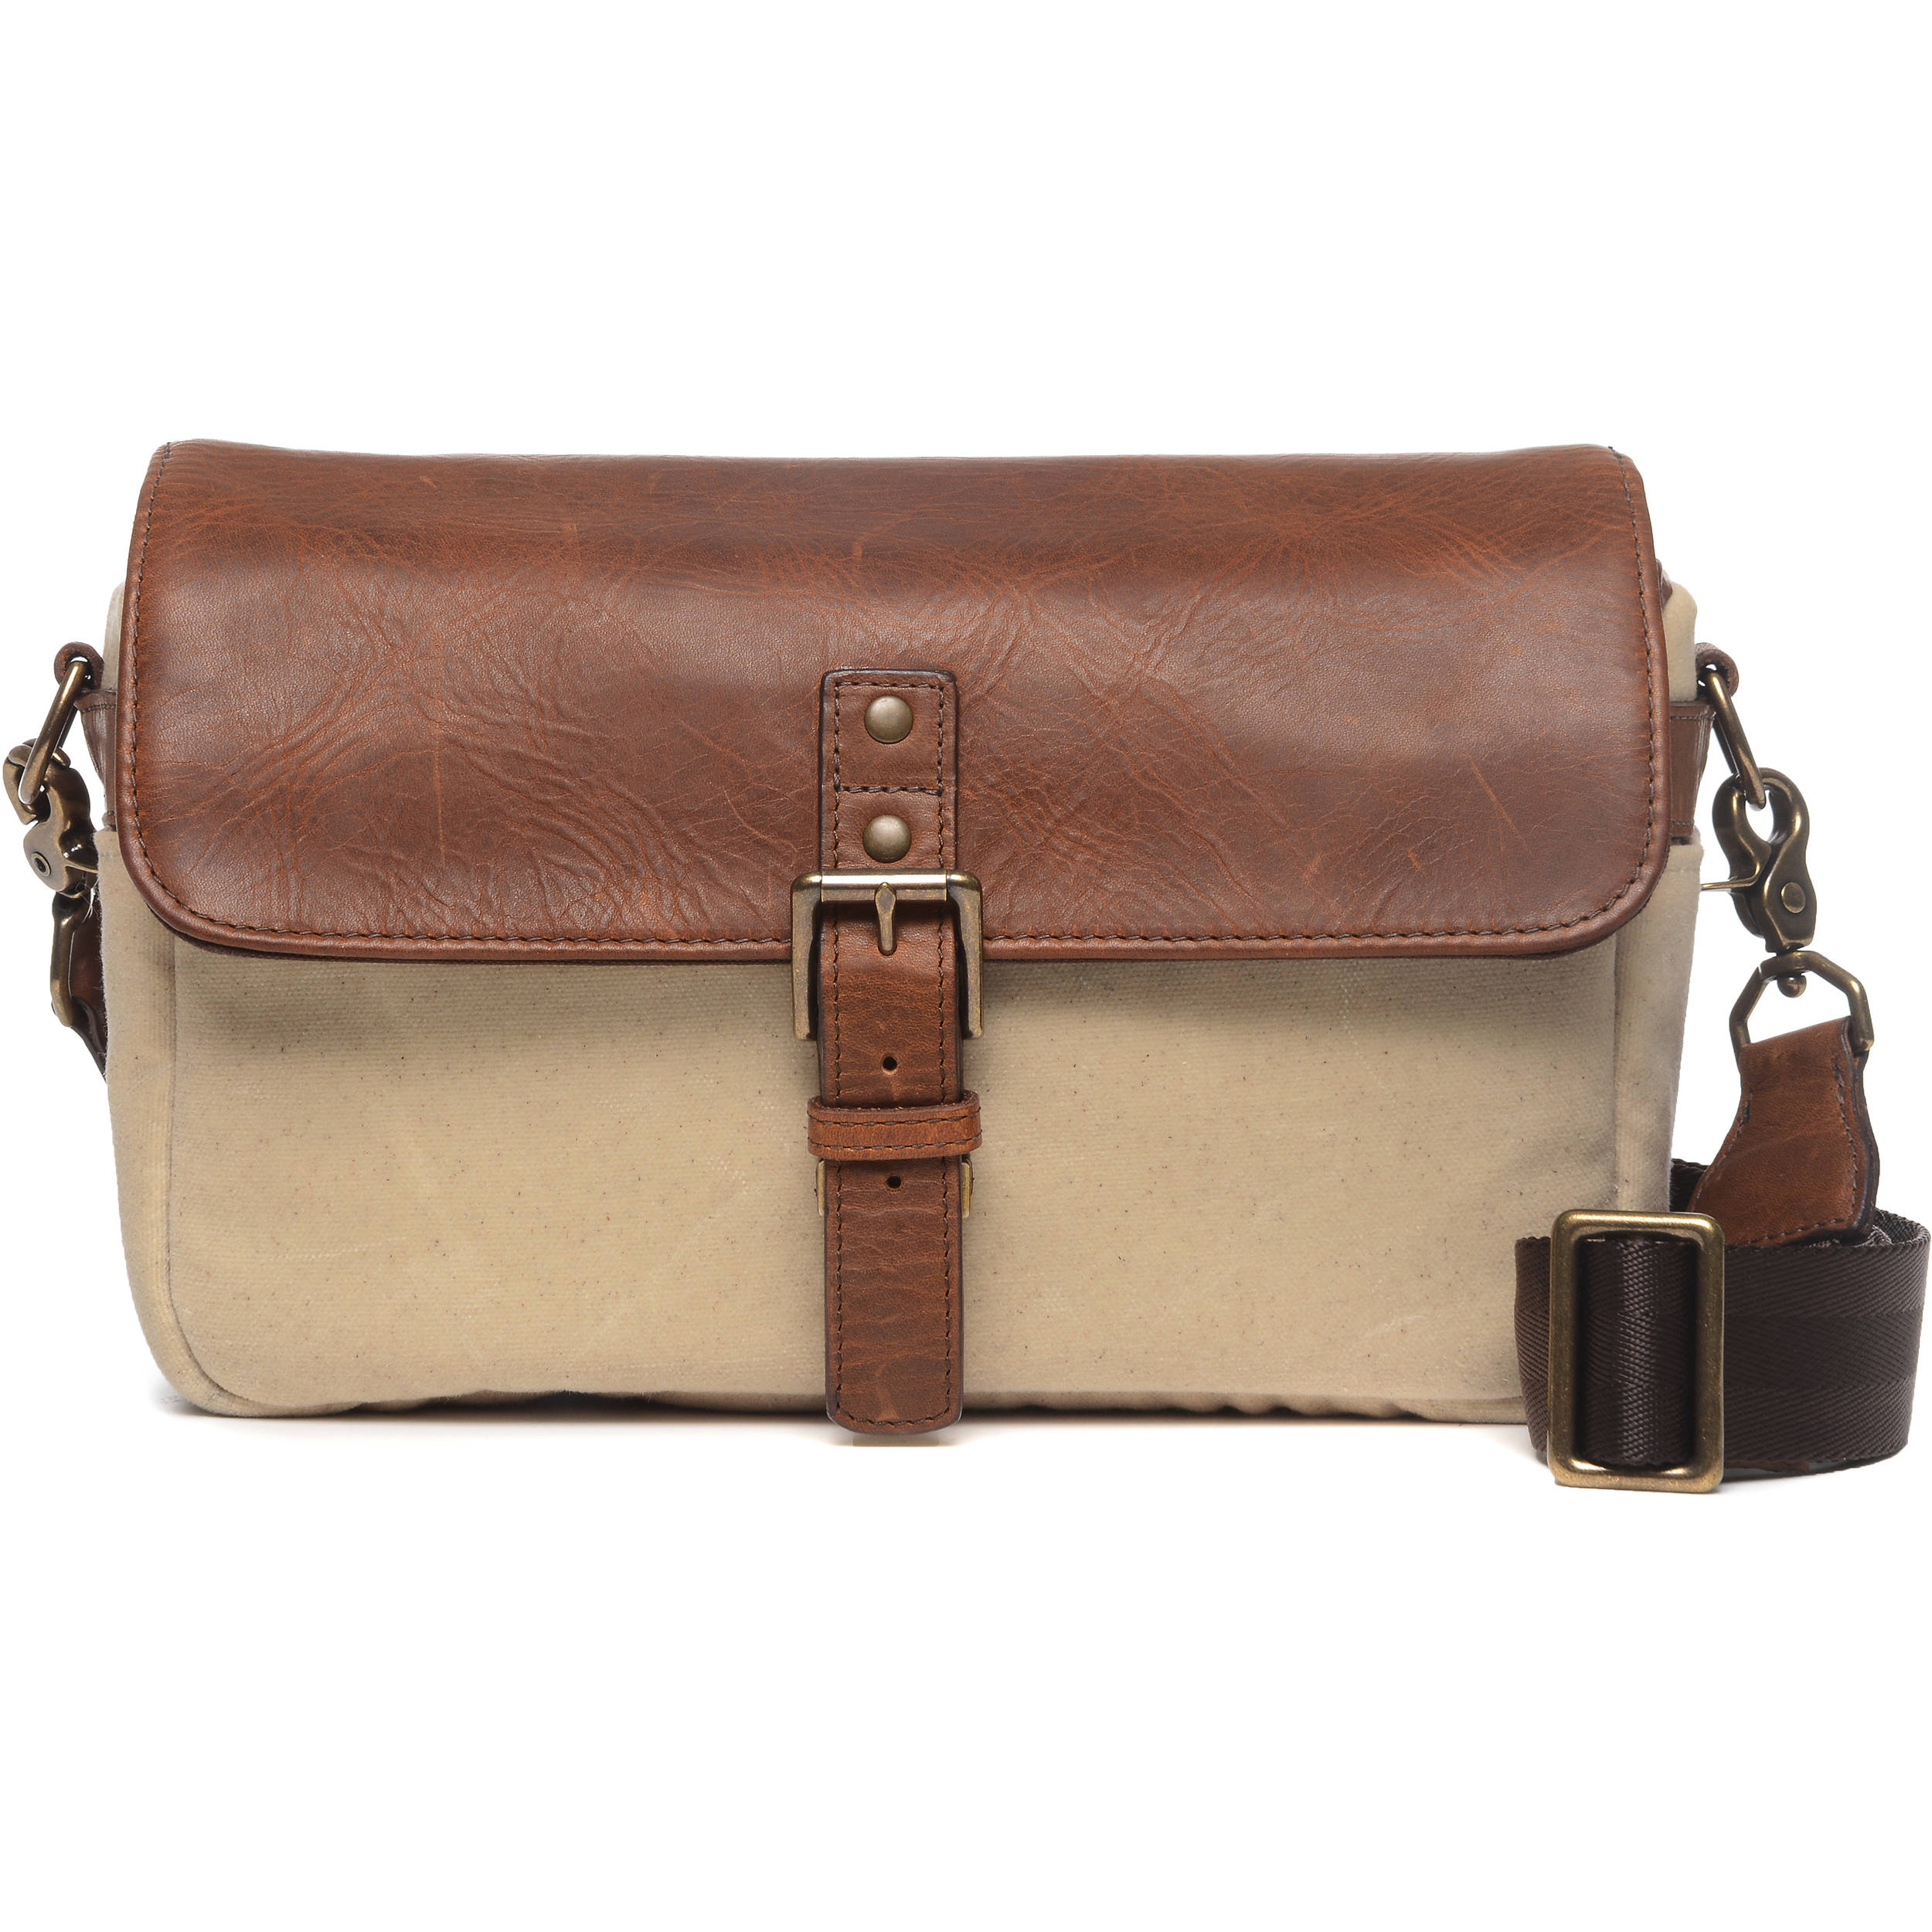 Ona Bowery 50 Camera Bag Leather Canvas Natural Antique Cognac